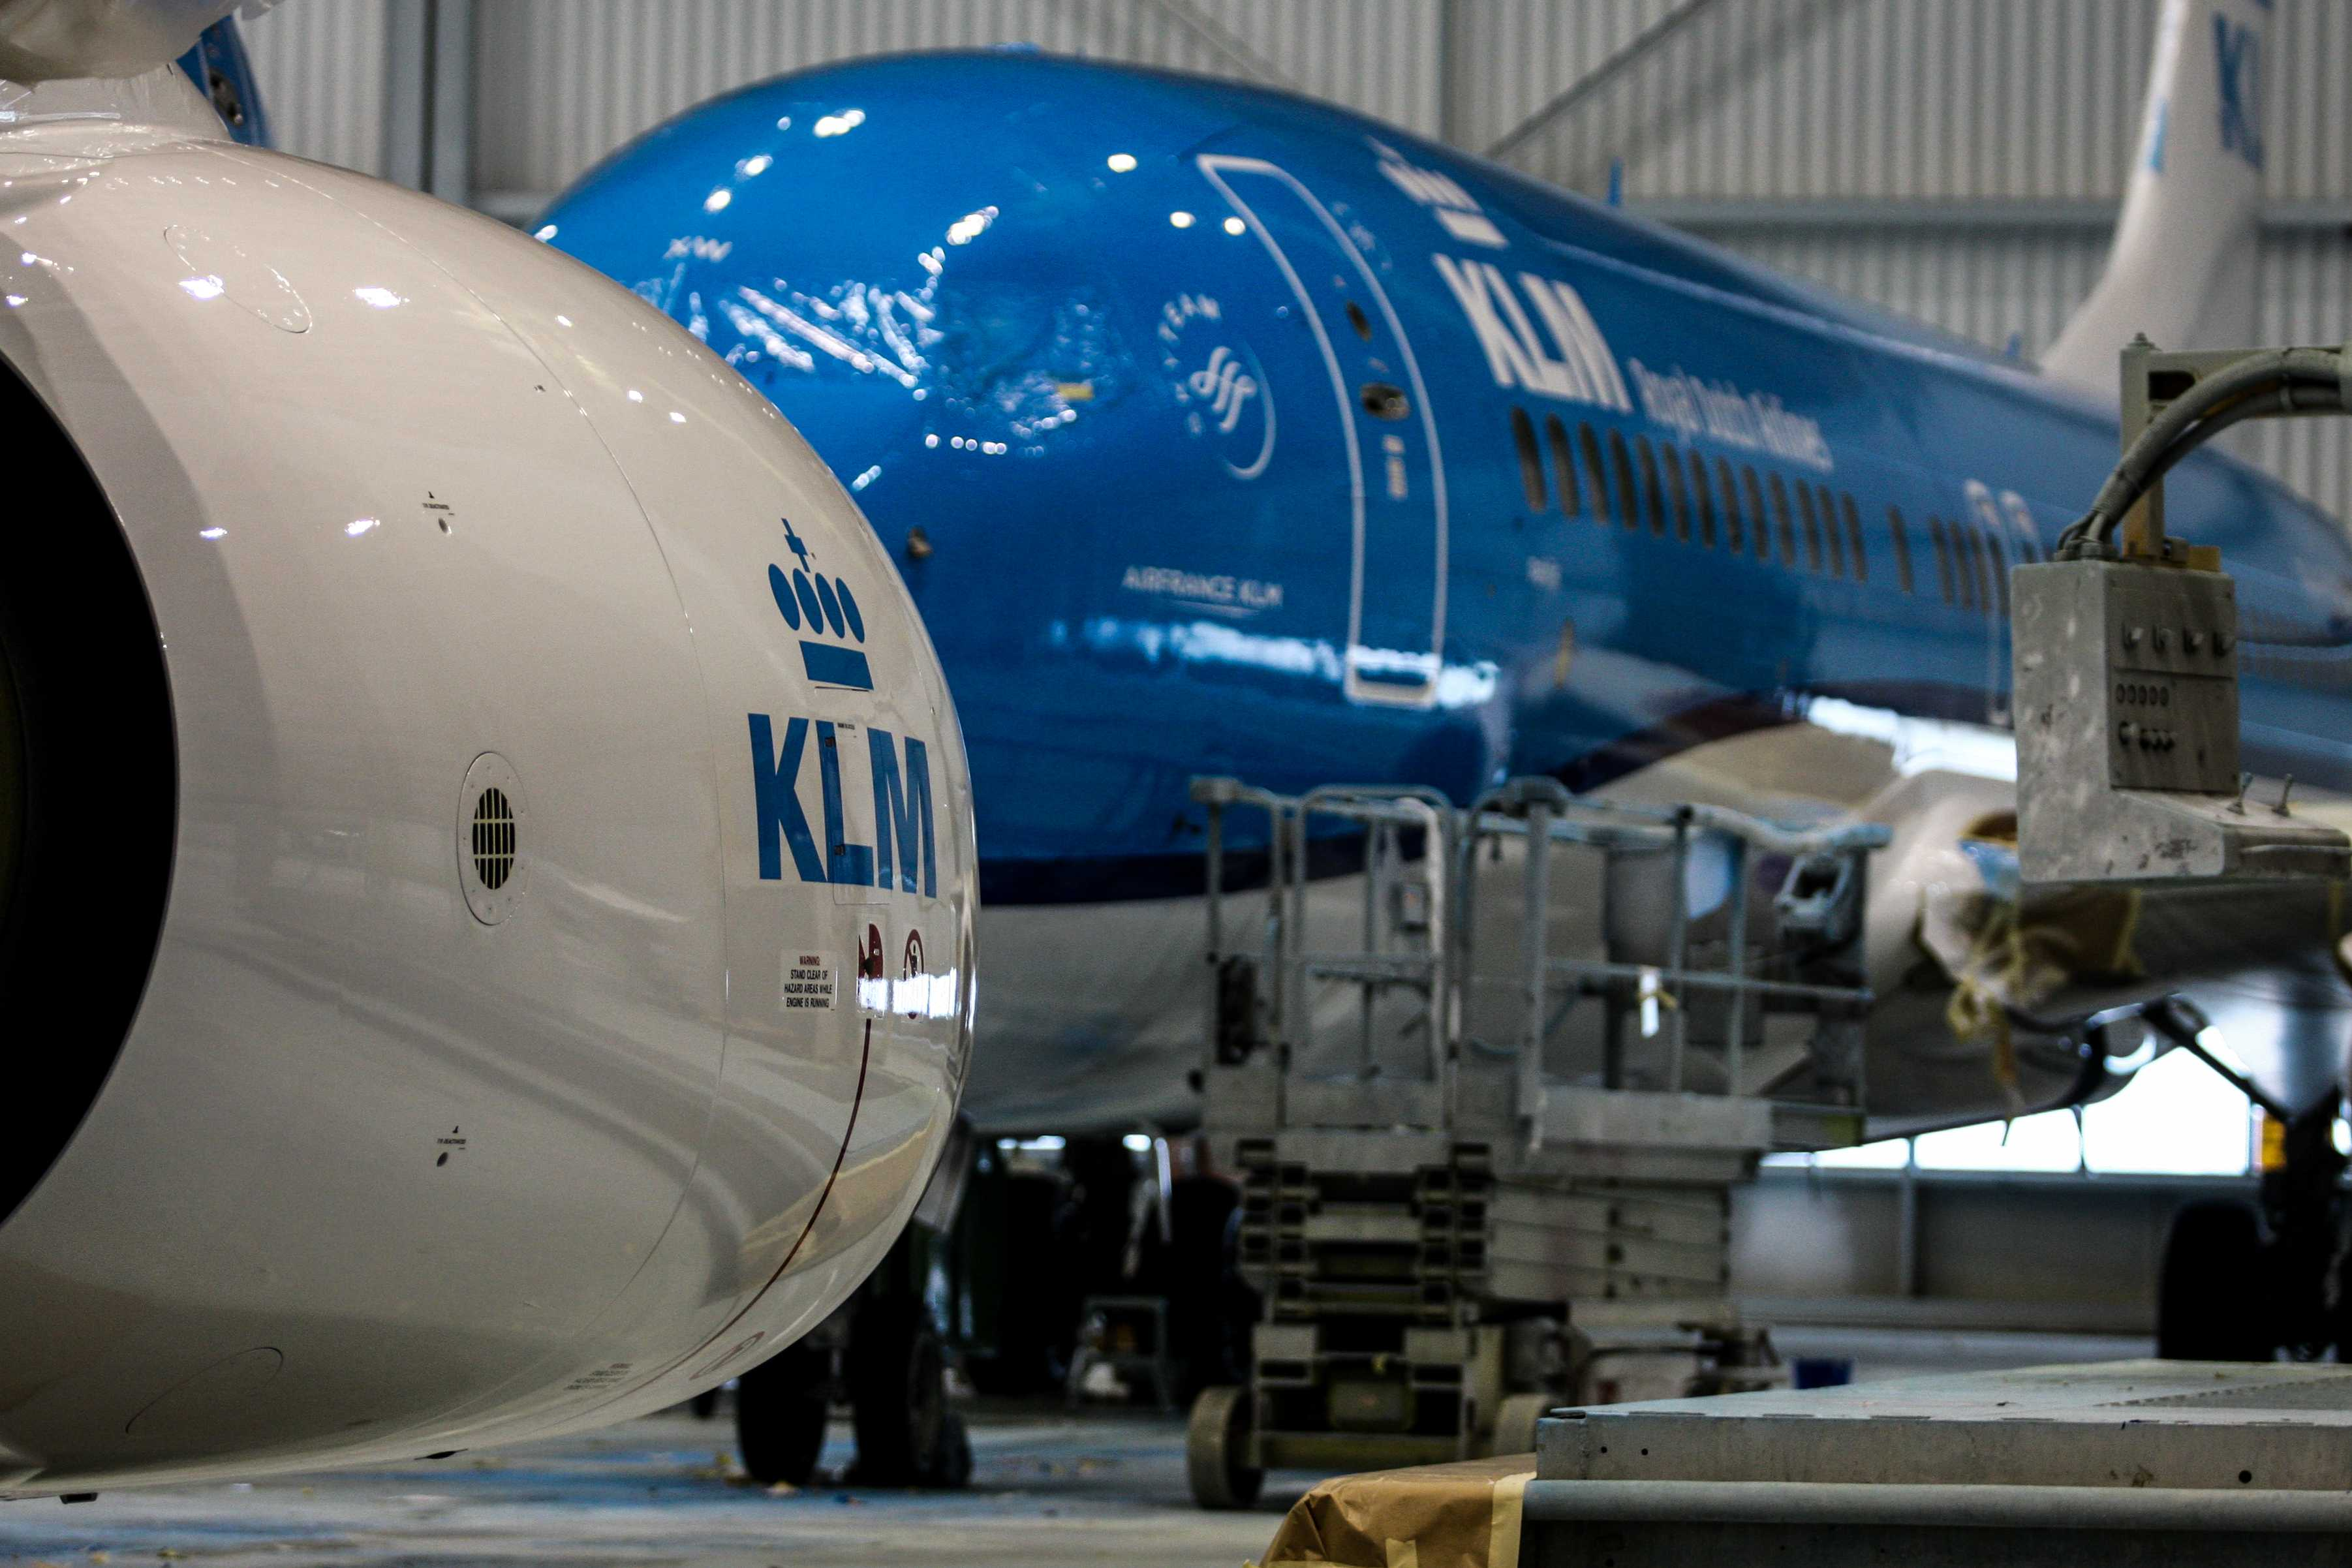 Boeing_737_KLM_livery_3